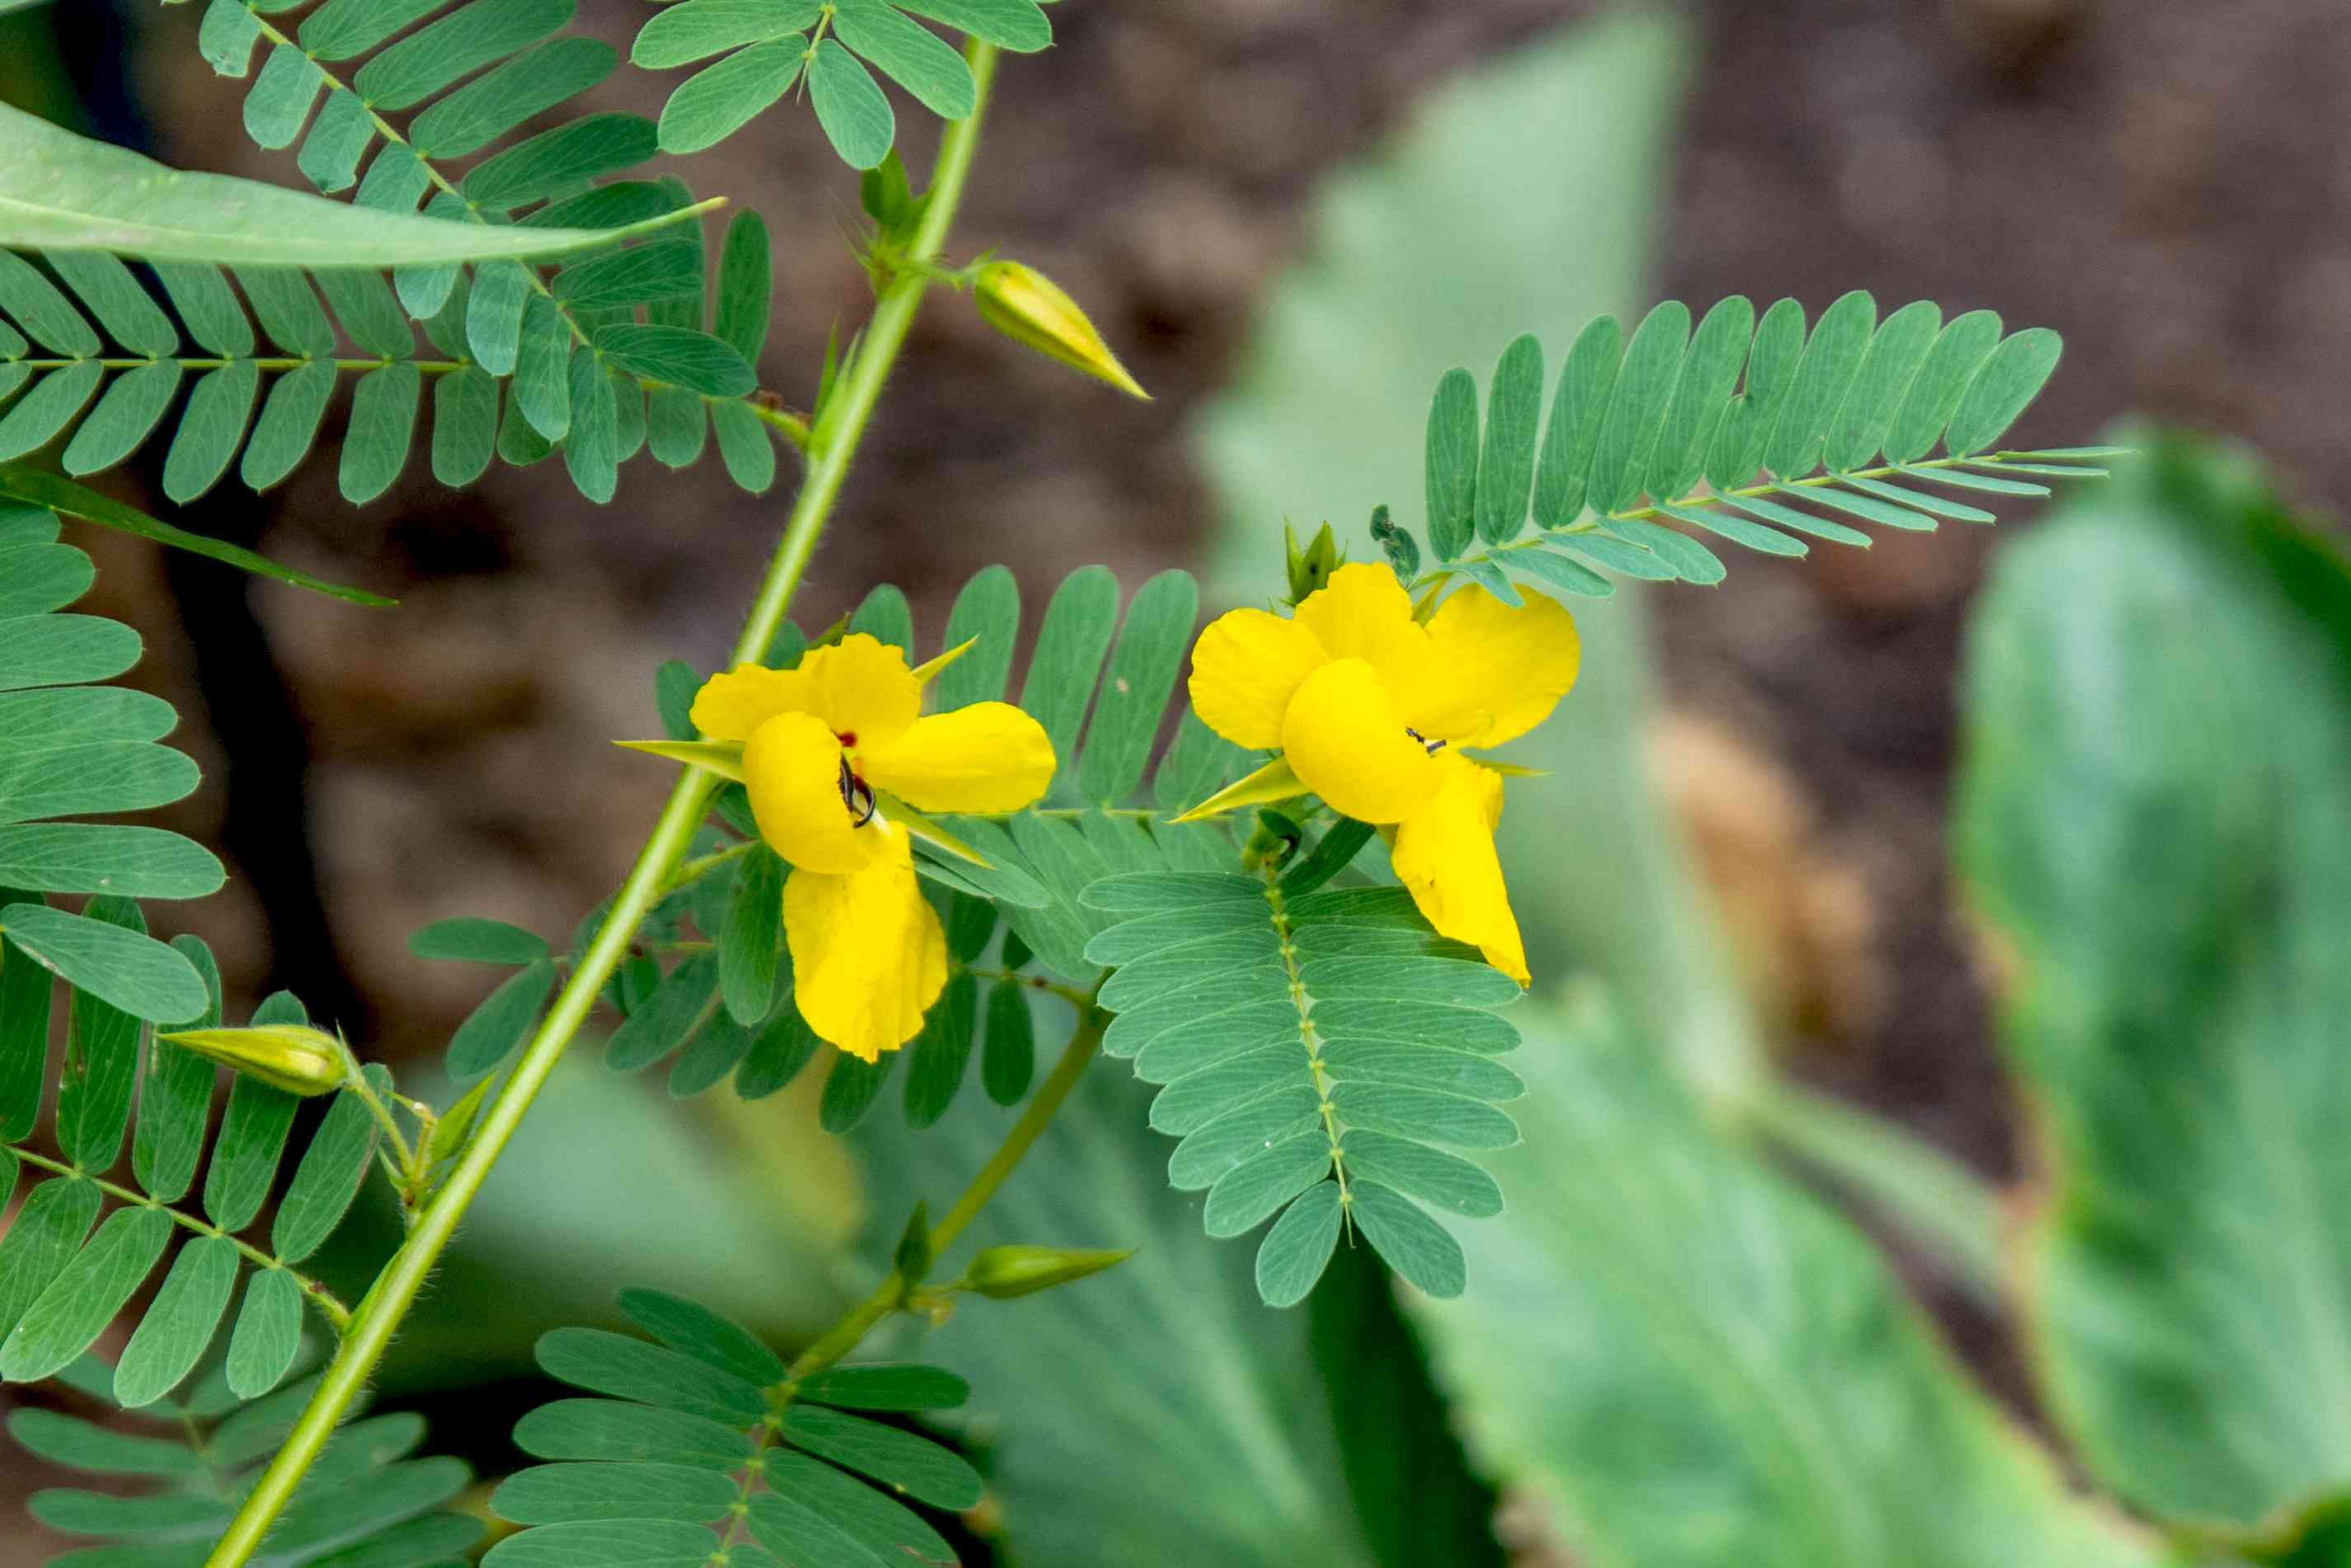 Partridge pea plant stem with yellow flowers and buds next to feathery leaves closeup😊